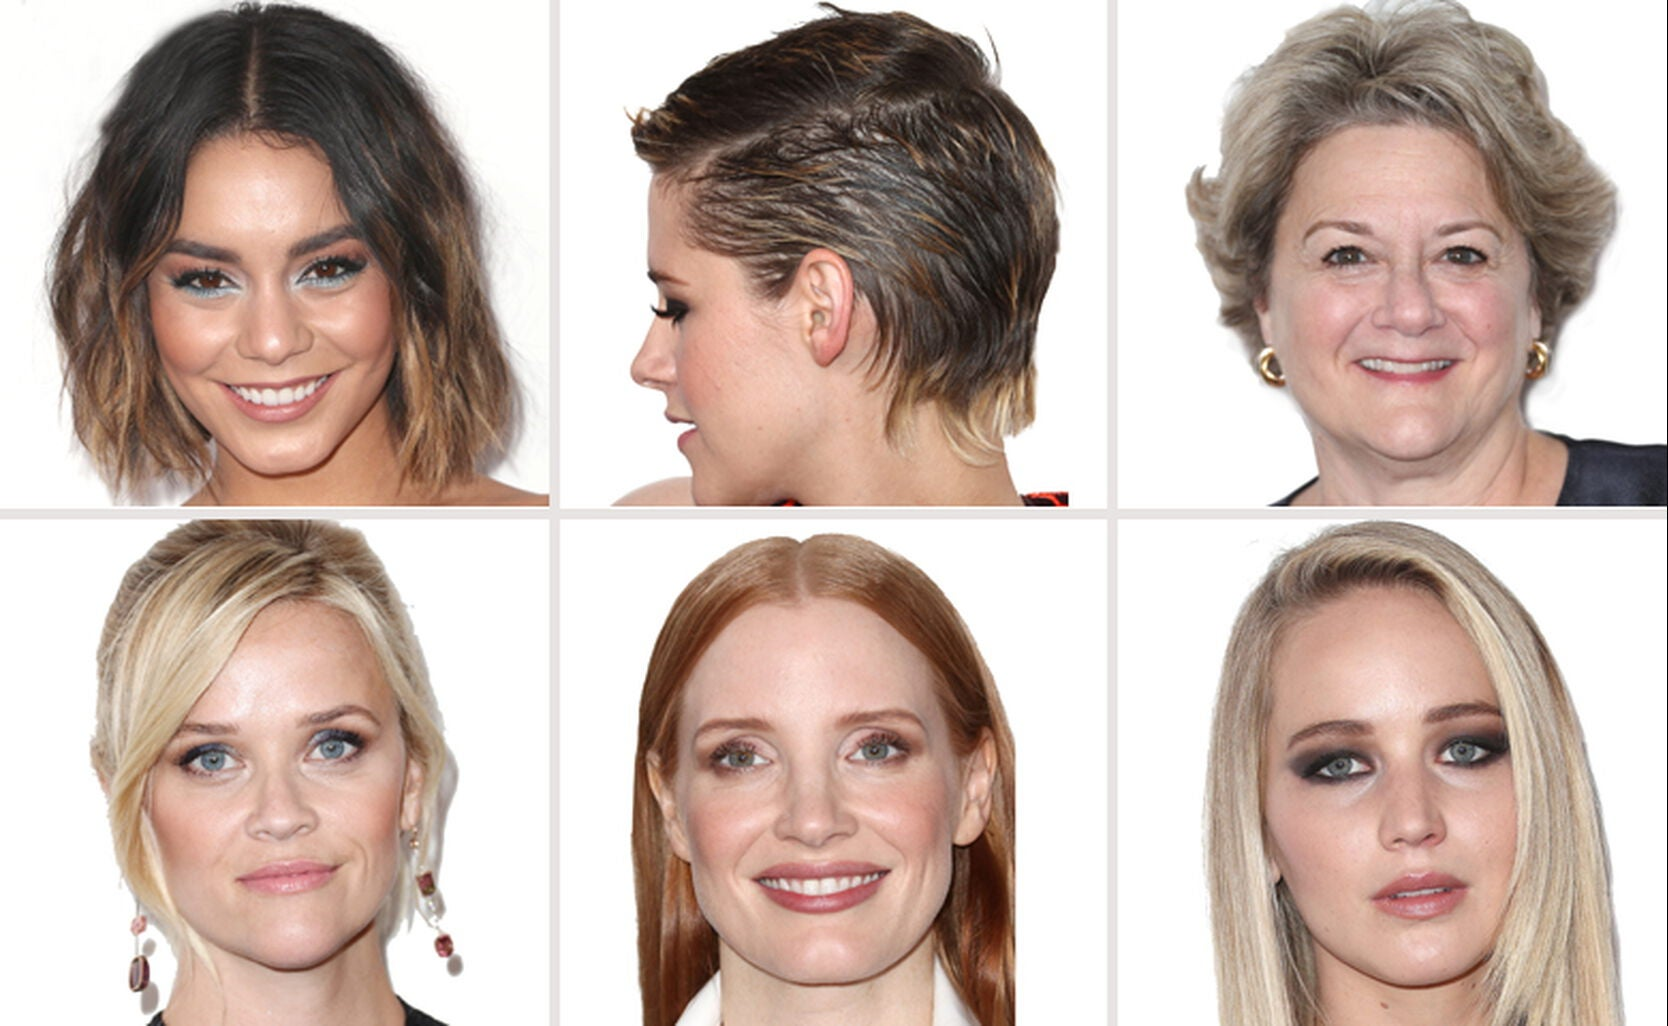 Vanessa Hudgens, Kristen Stewart, Bonnie Arnold, Reese Witherspoon, Jessica Chastain and Jennifer Lawrence